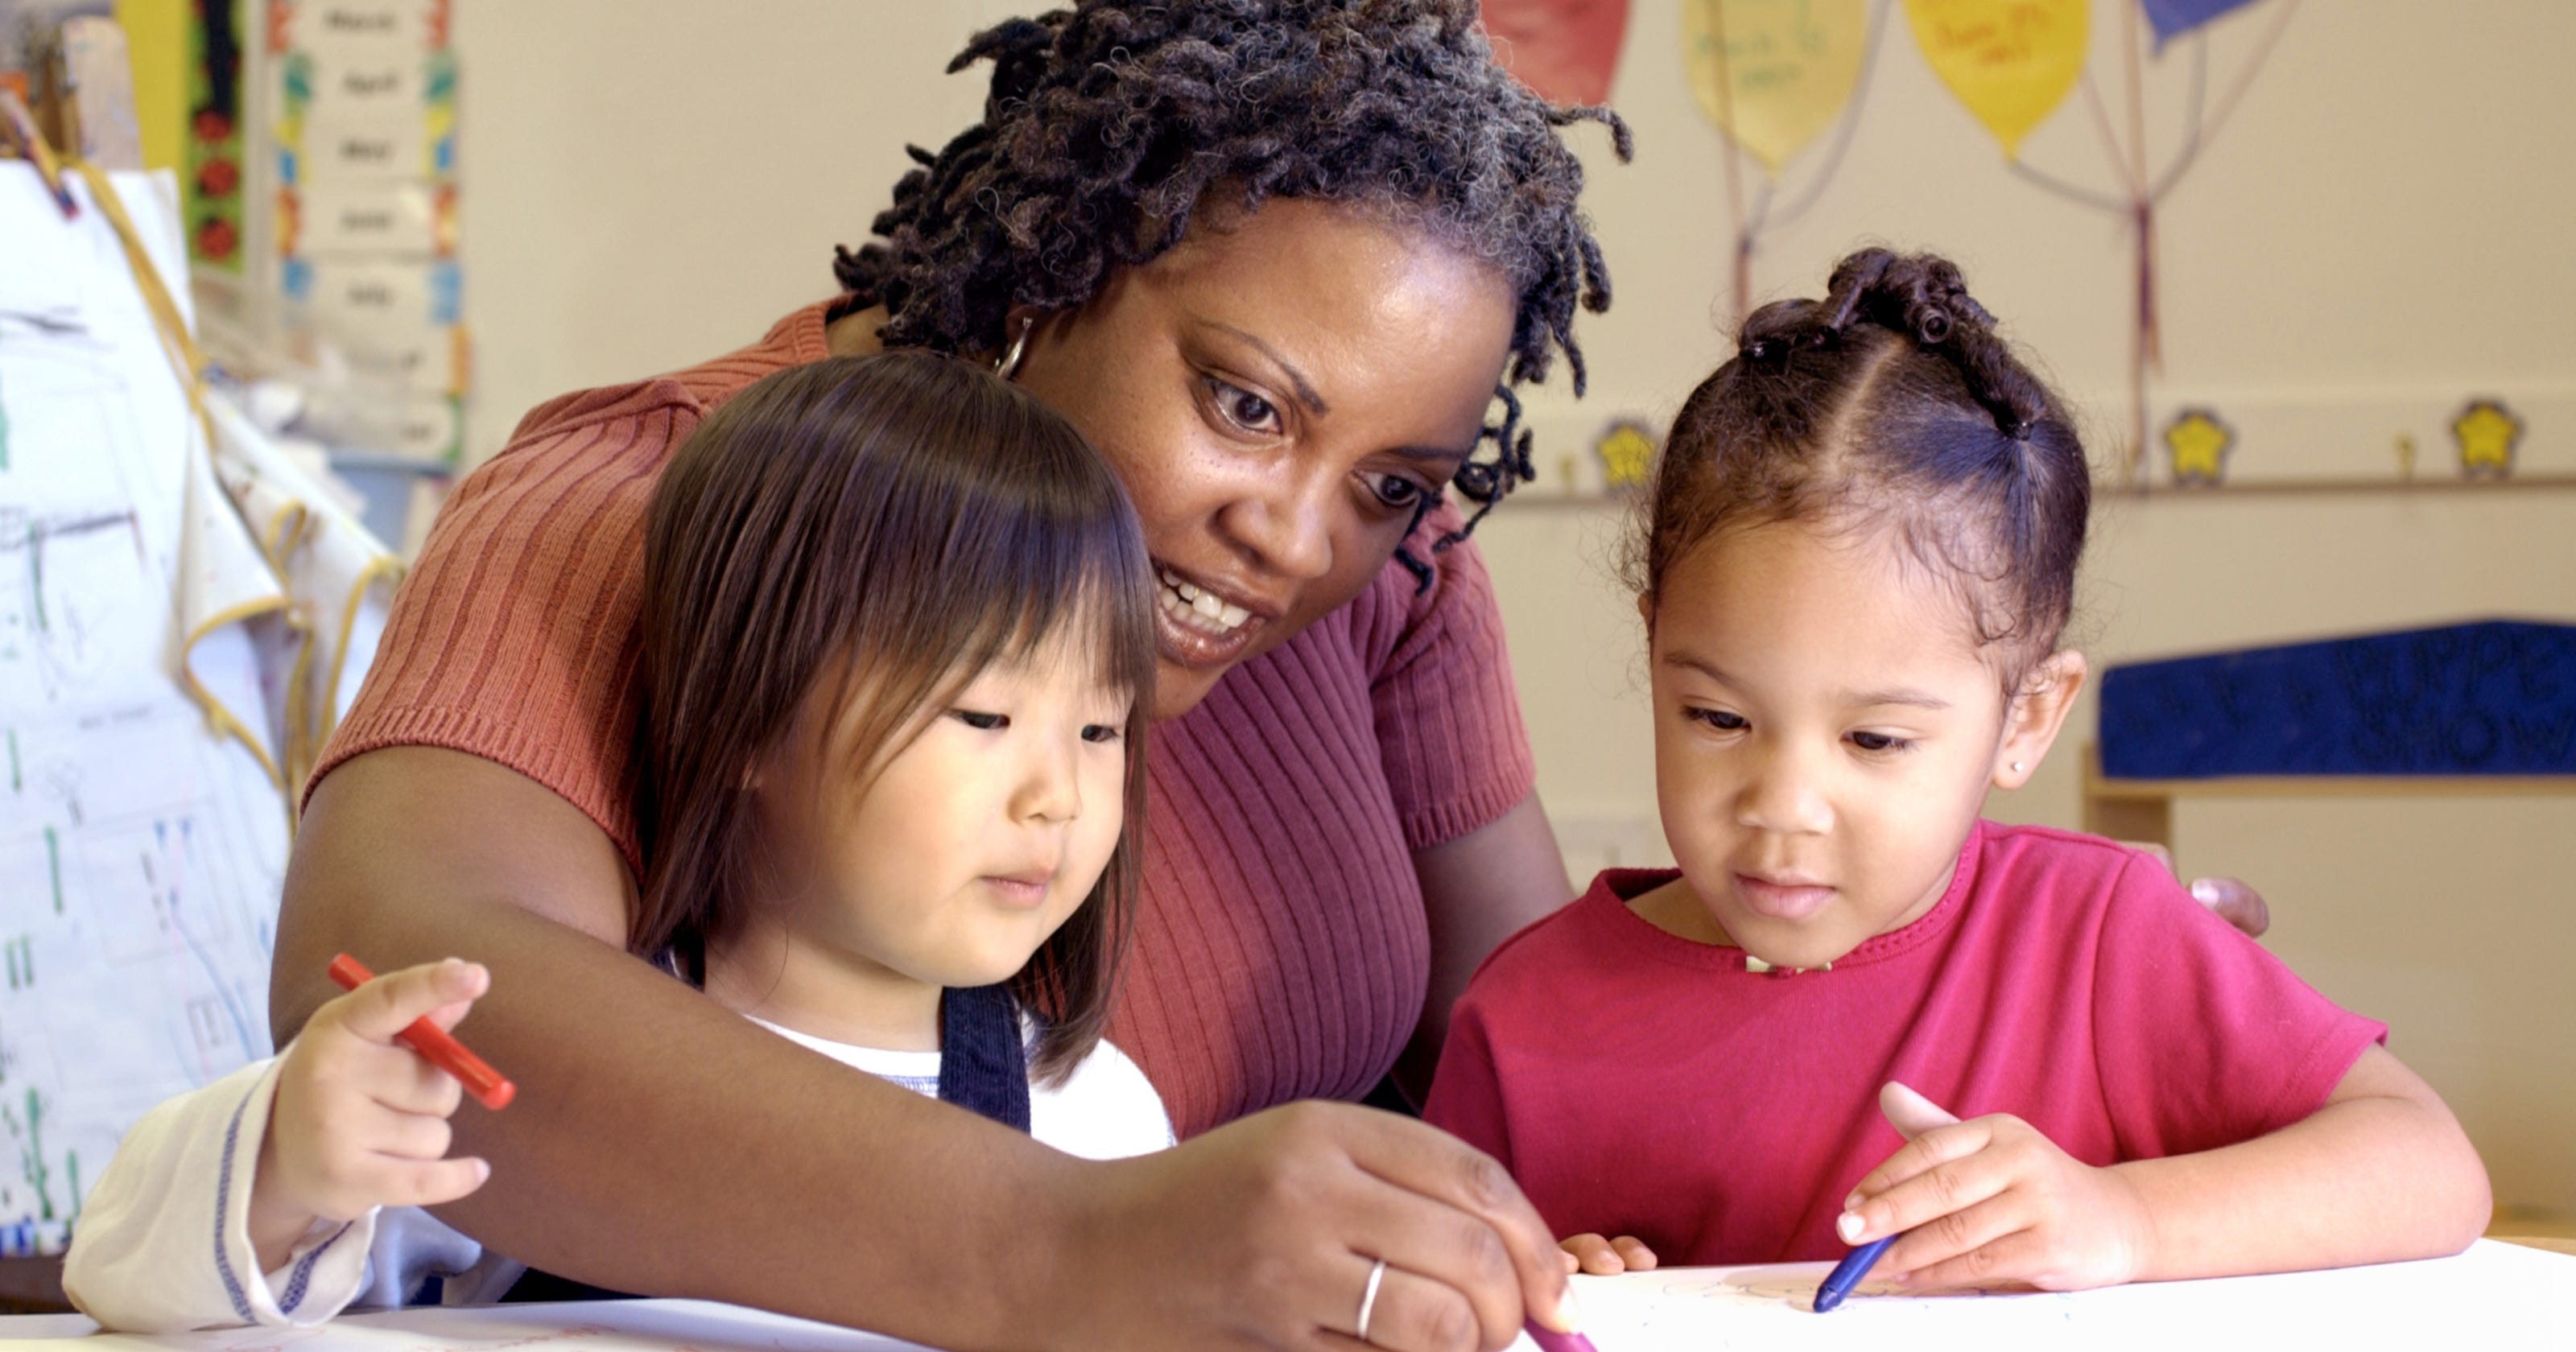 Quick Tips: Child care costs and hiring a nanny